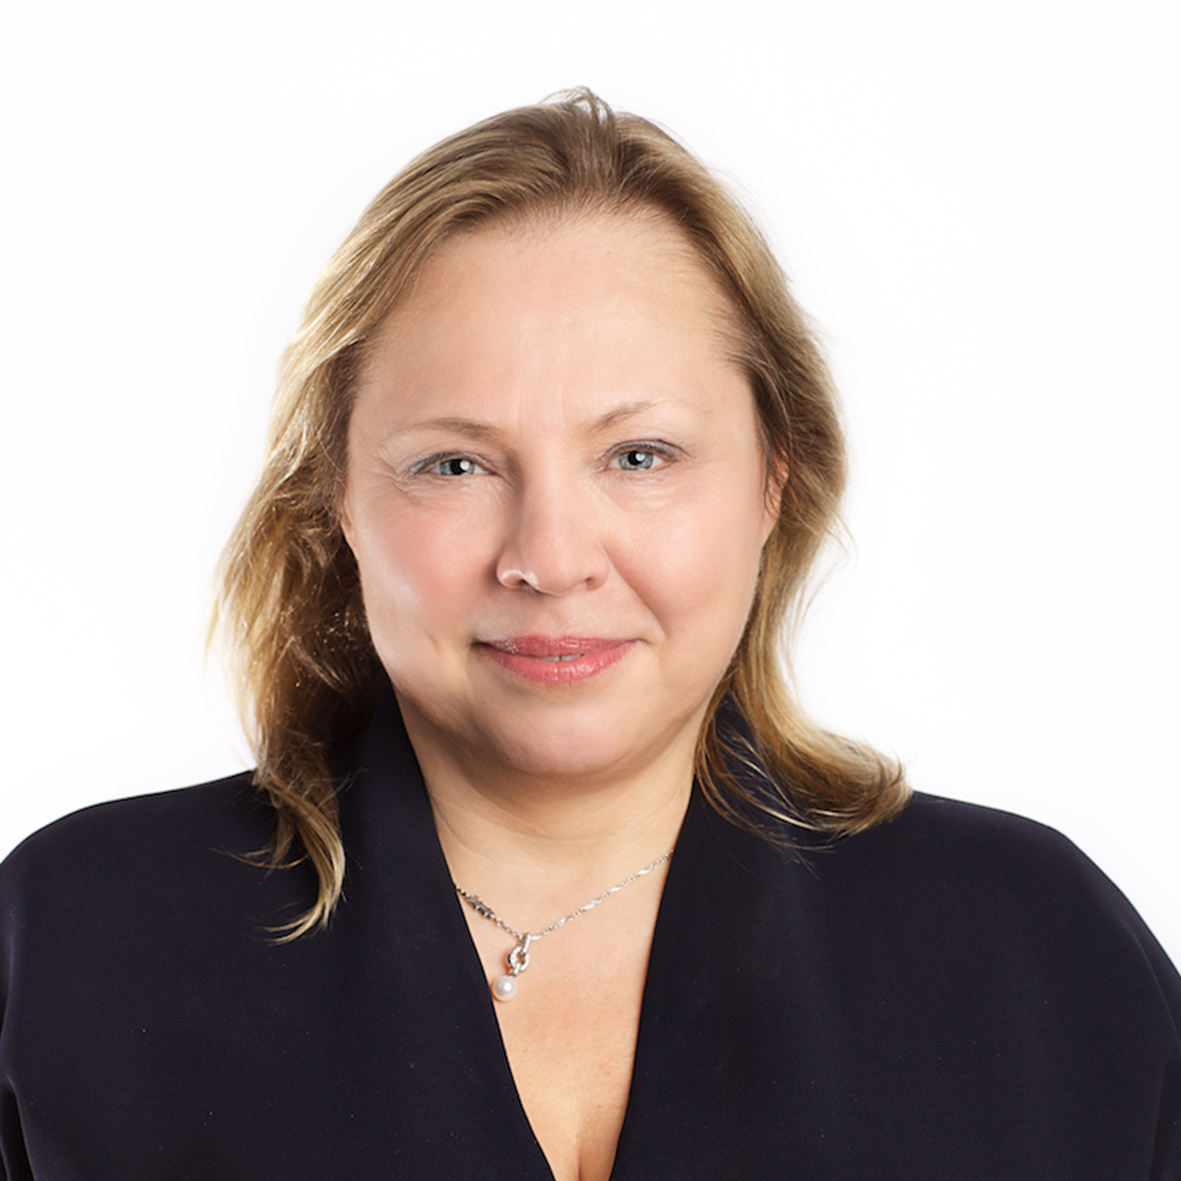 Eleanor Malcolm,    Head of Conduct, Julius Baer   Eleanor Malcolm, Head of Conduct in the UK and member of the Julius Baer International Limited Board of Directors, is responsible for our client outcomes and experience. She has extensive experience across multiple wealth management firms in the UK as both a Relationship Manager and more recently in senior business and risk management roles.